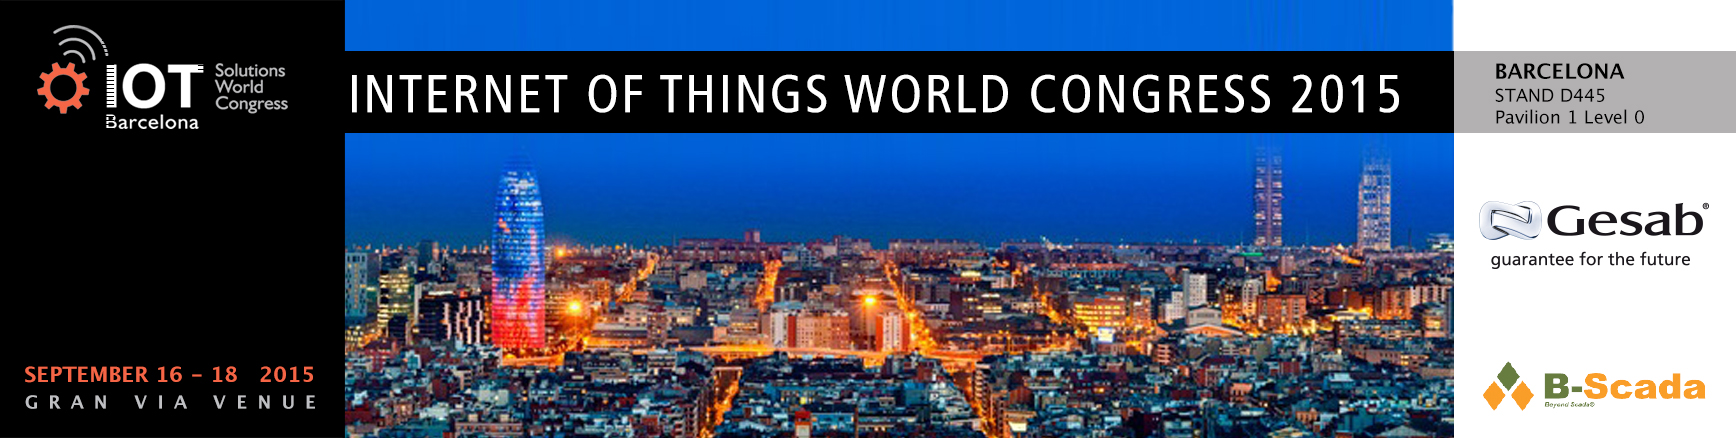 banner_IOTSWorldCongress(EN)